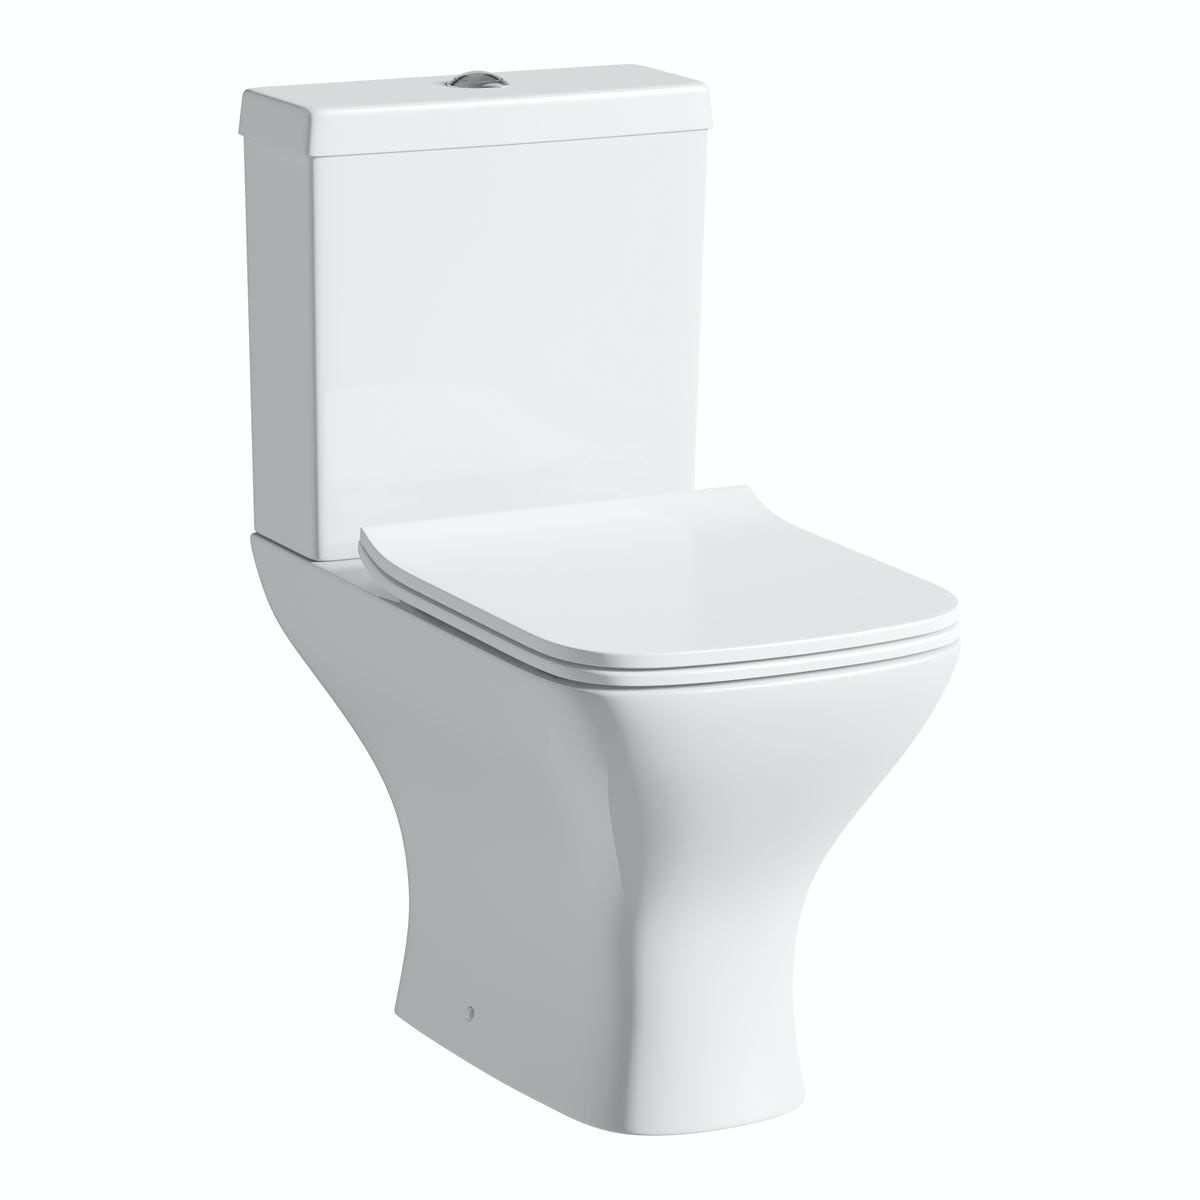 Orchard Derwent square compact close coupled toilet with slimline soft close toilet seat with pan connector